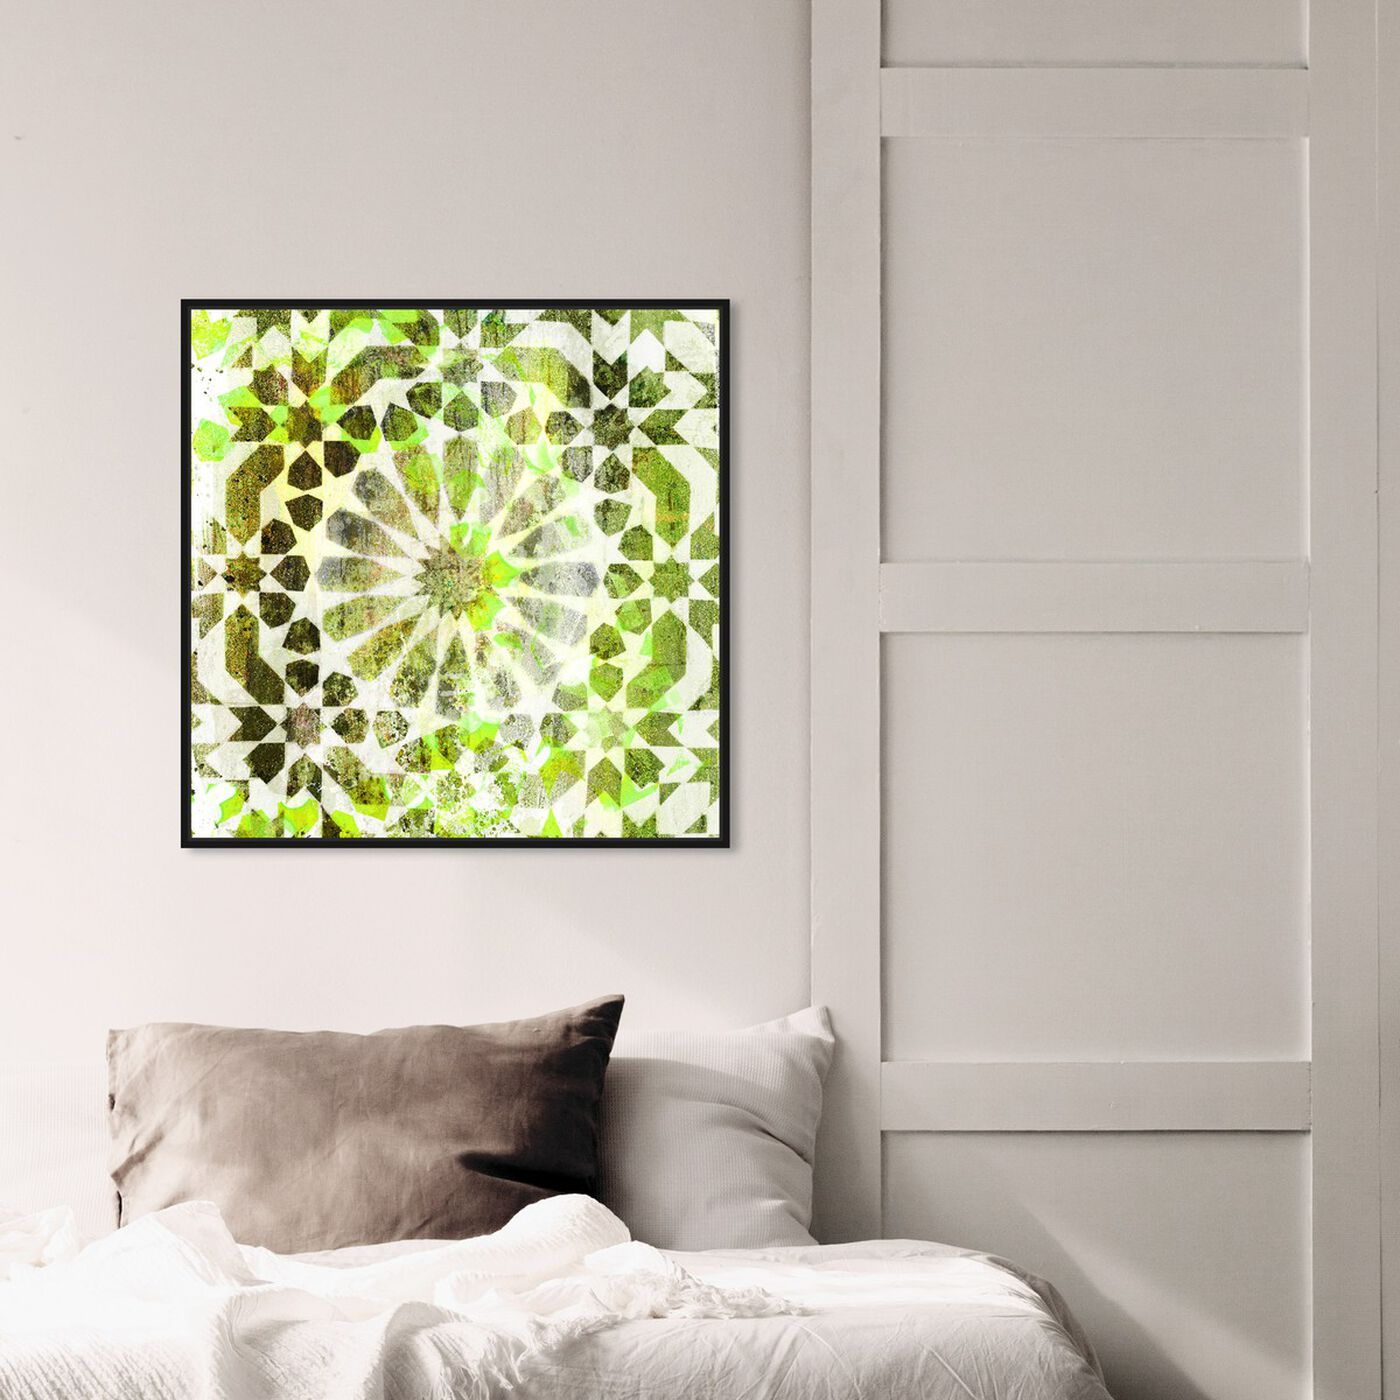 Hanging view of Majid Vert featuring abstract and patterns art.